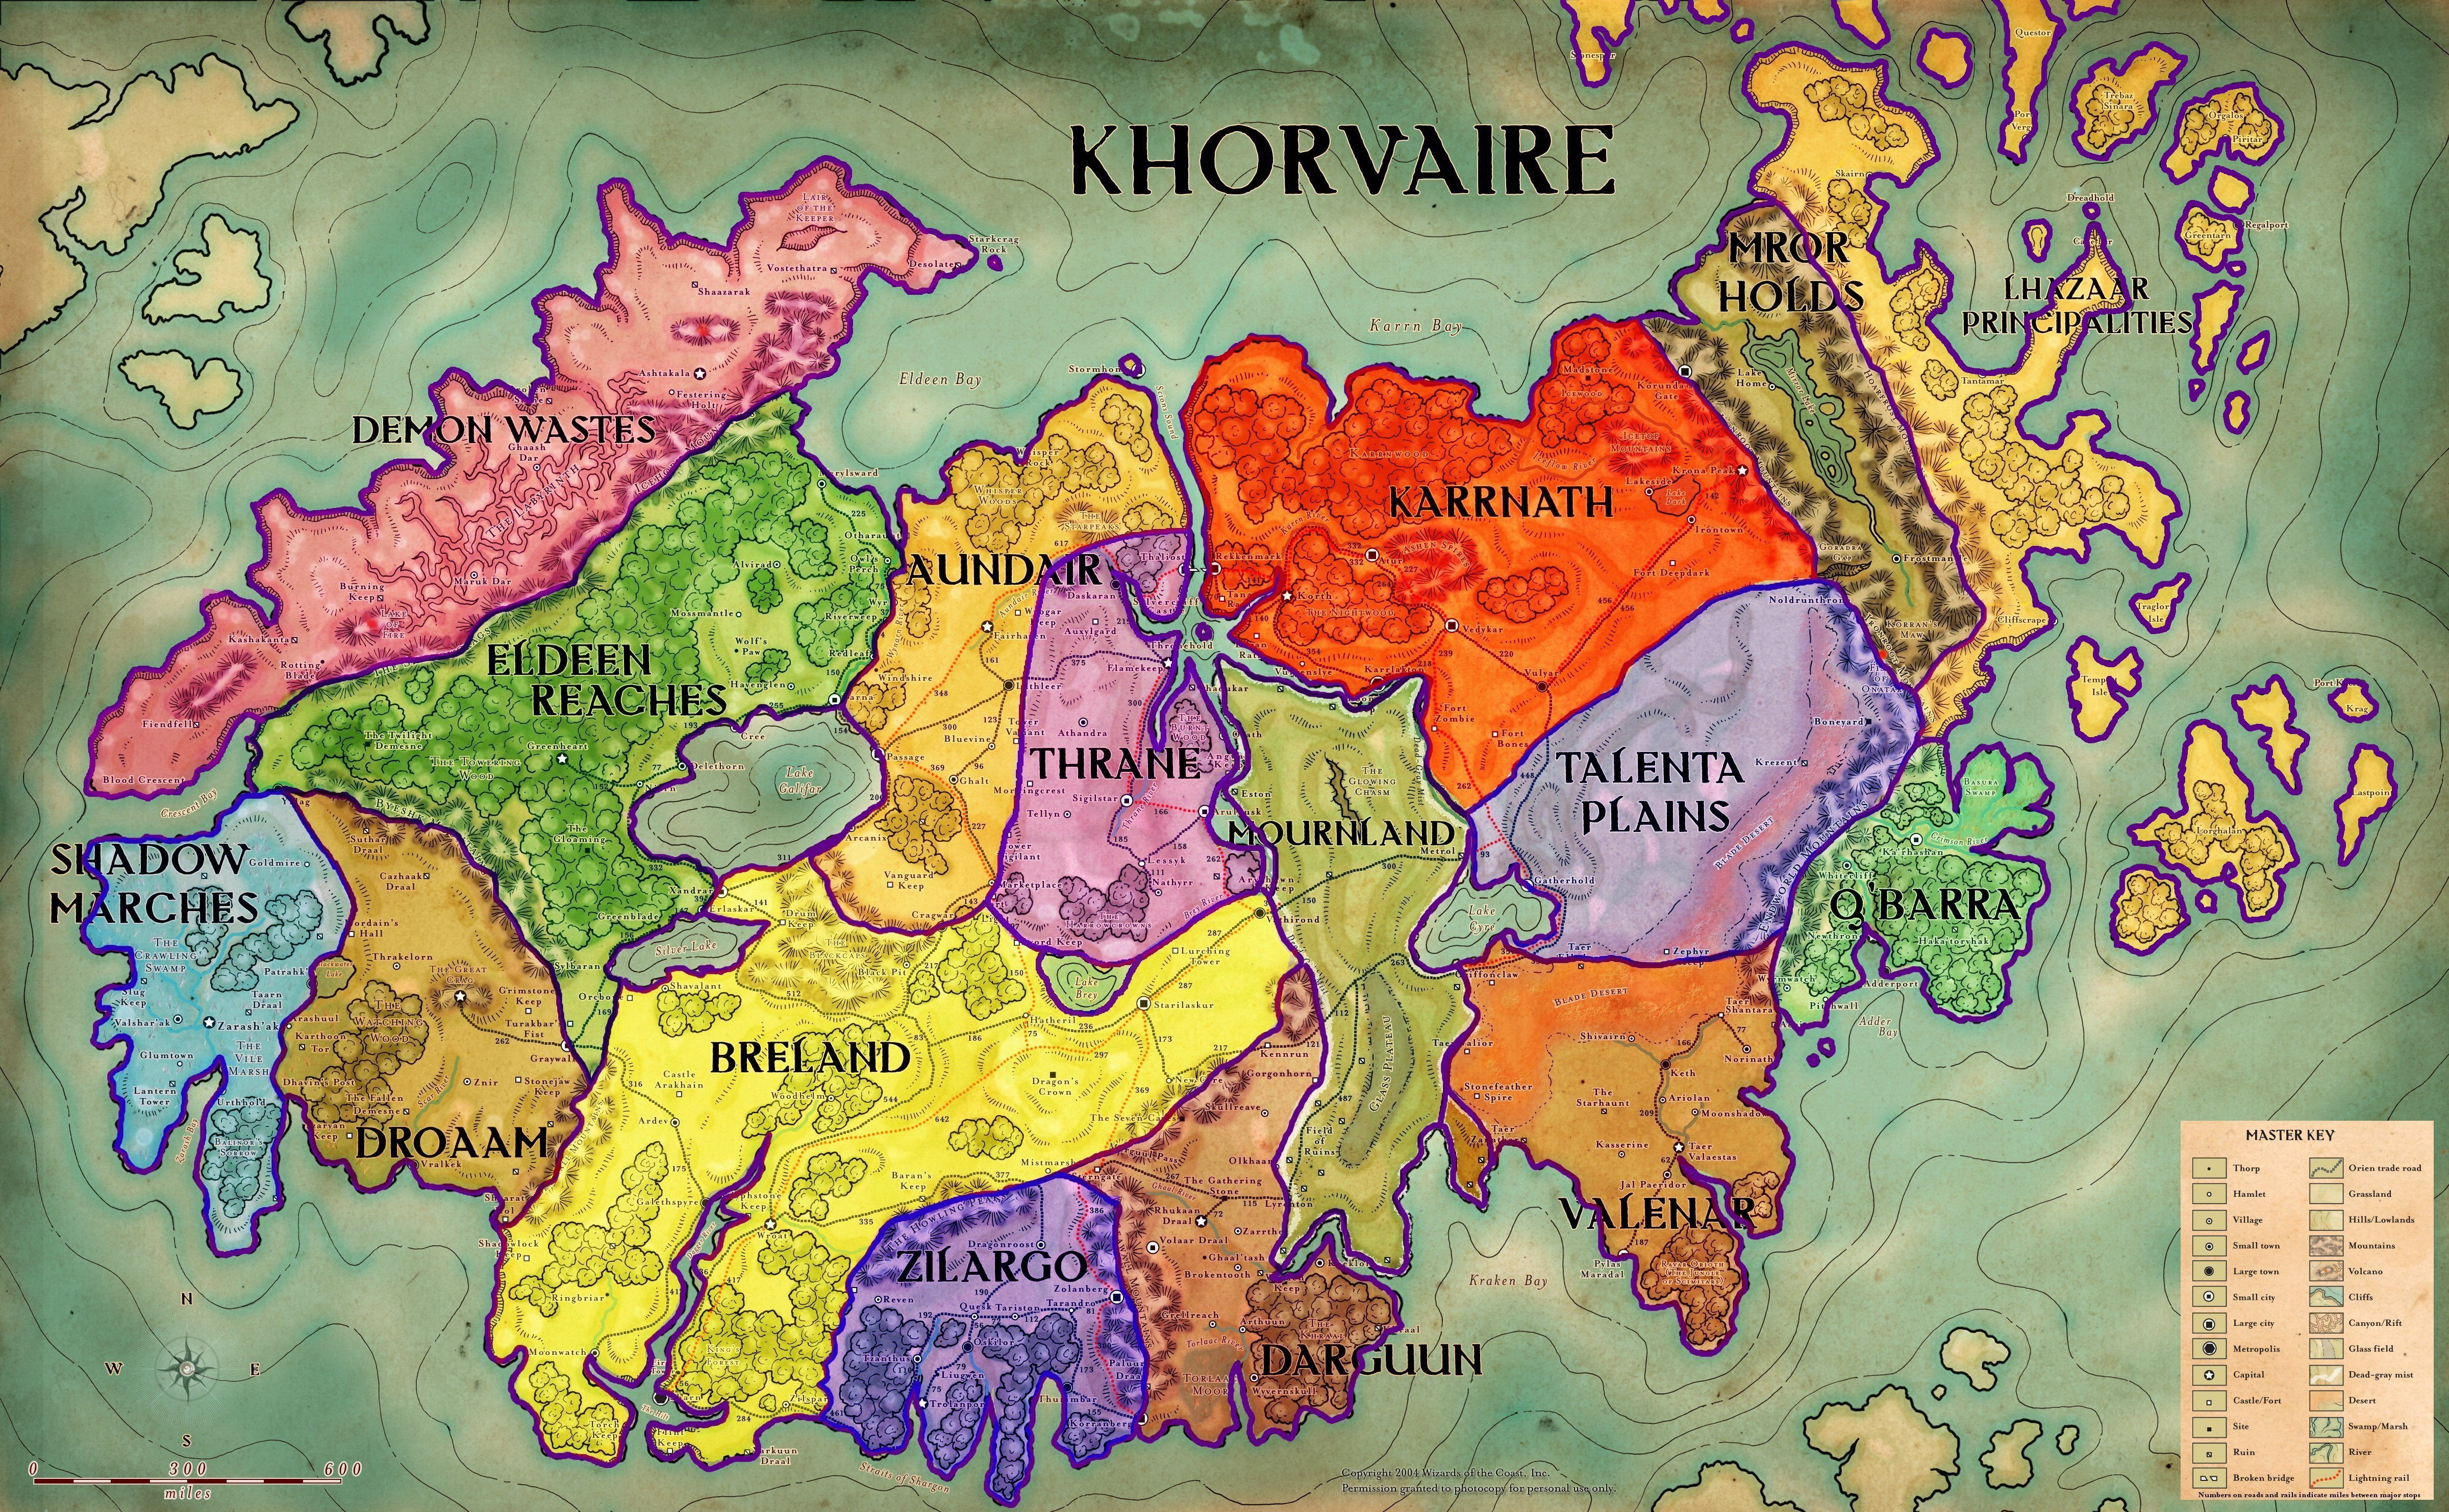 Territory Map Of Khorvaire Http://web.mit.edu/kbyers/Public/dnd/khorvaire  Map Colored